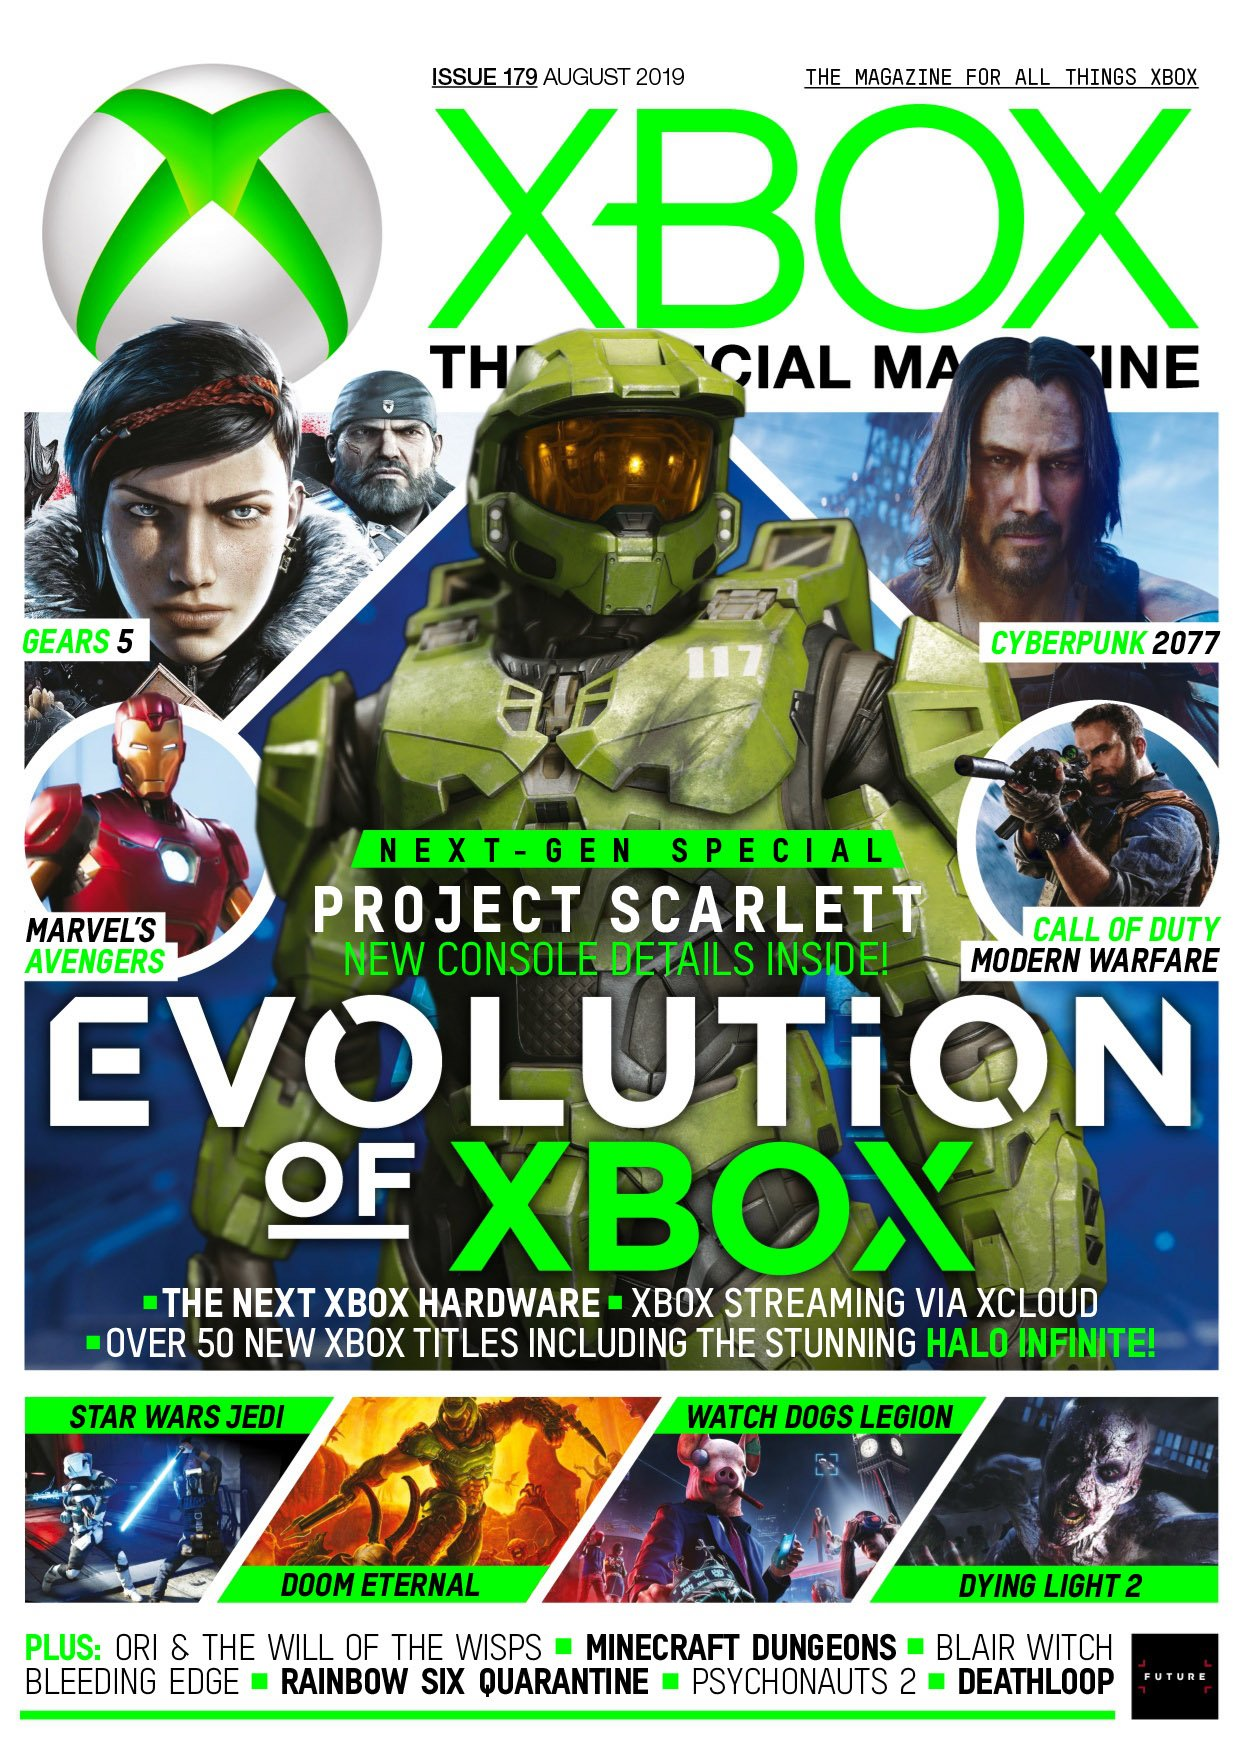 XBOX The Official Magazine Issue 179 (August 2019)